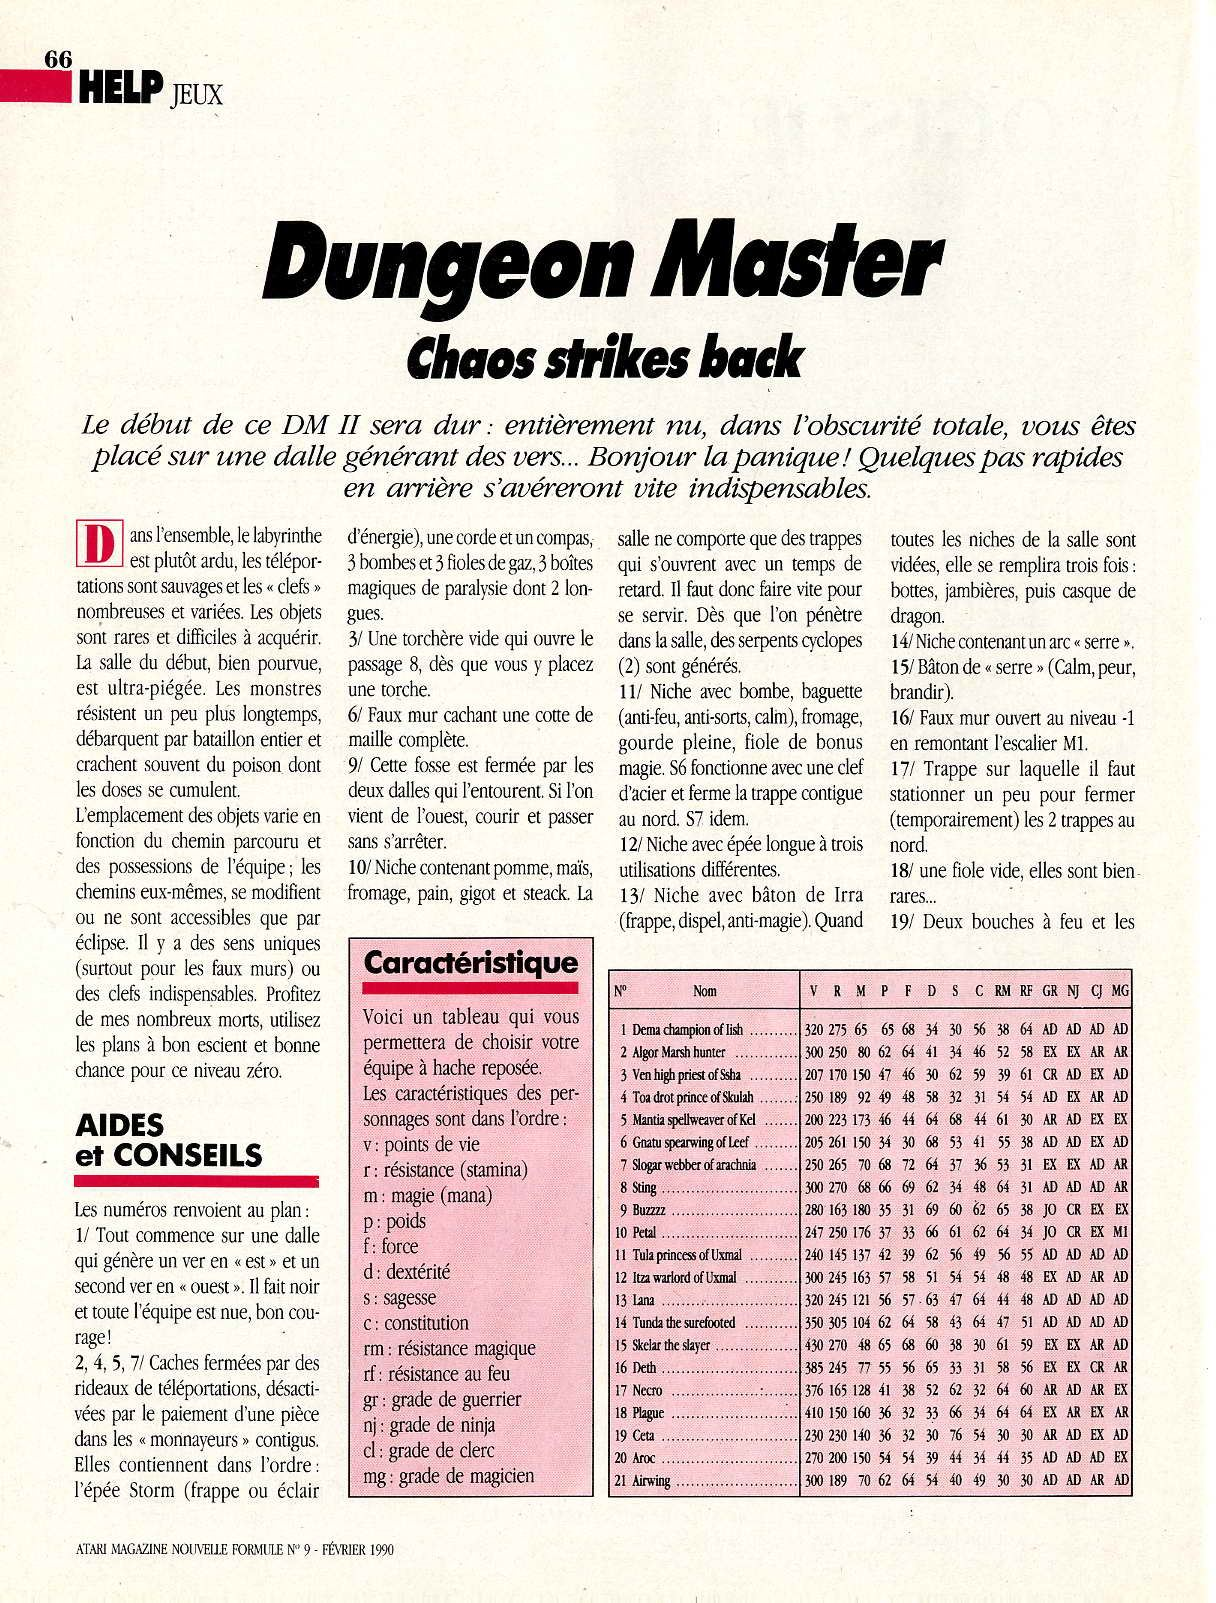 Chaos Strikes Back Hints published in French magazine 'Atari Magazine', Issue #9 February 1990, Page 66